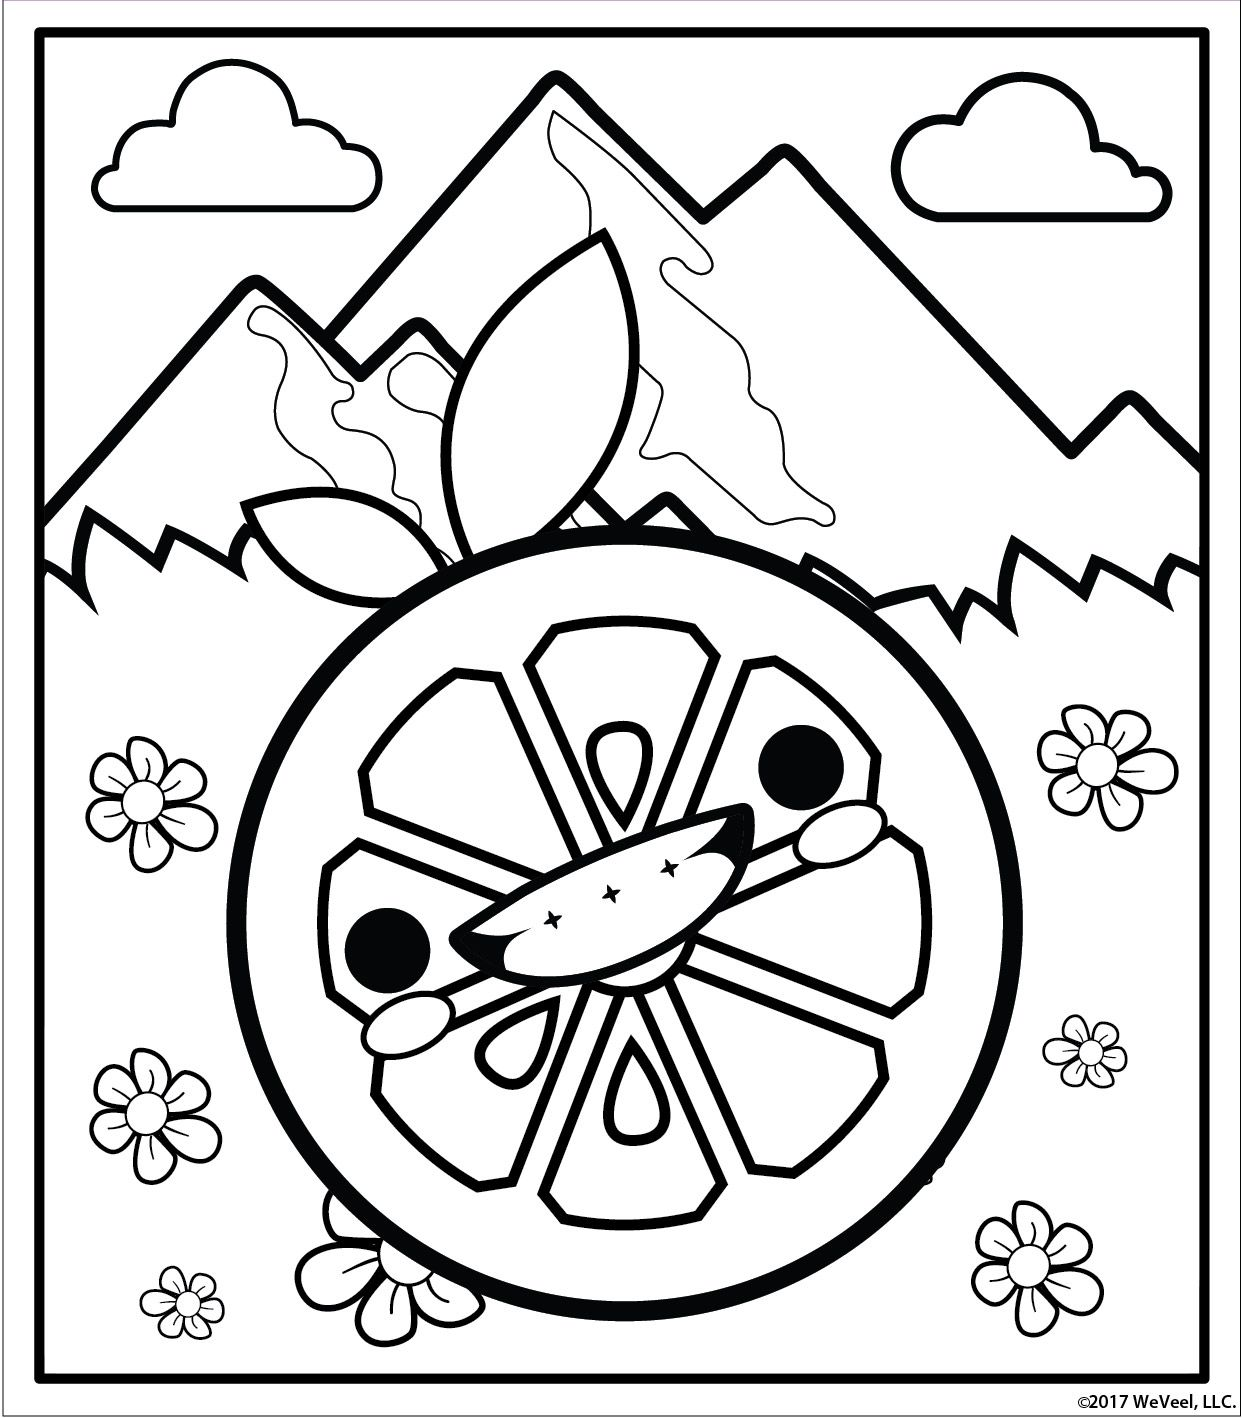 Free Printable Coloring Pages At Scentos Com Cute Girl Coloring Pages To Download And Free Kids Coloring Pages Monster Coloring Pages Coloring Pages For Girls